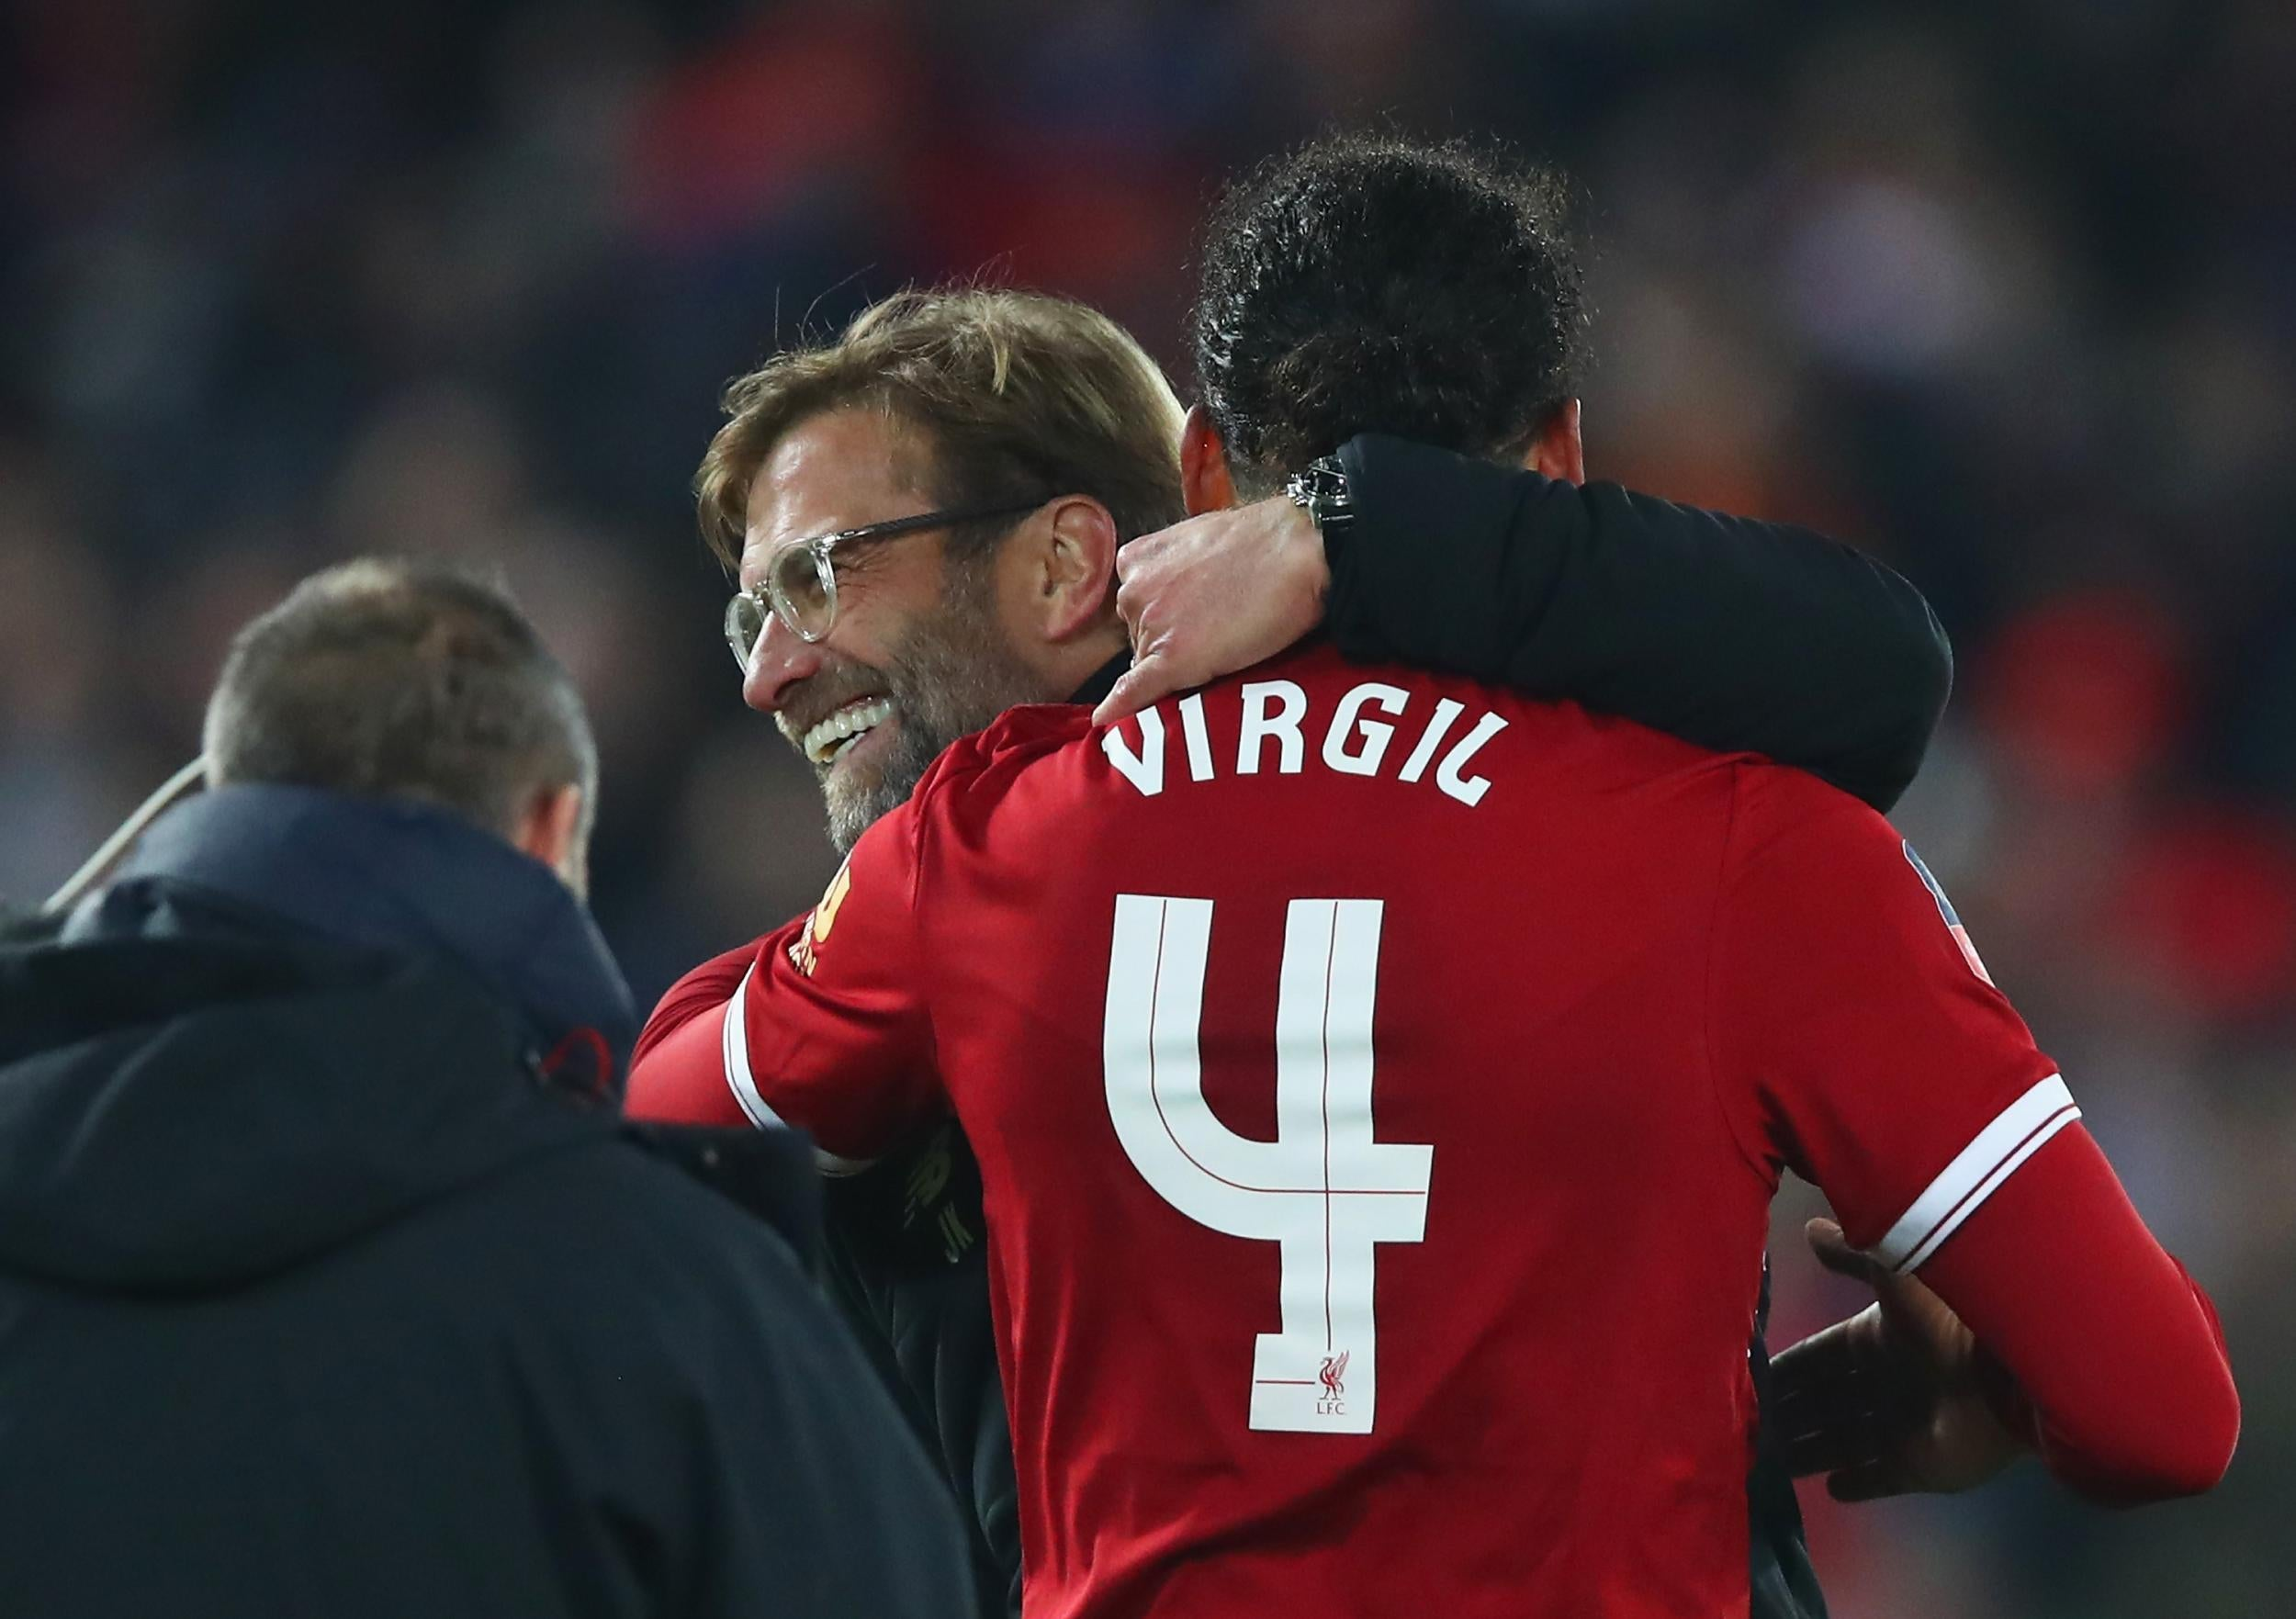 Jurgen Klopp Delighted With Virgil Van Dijk S Brilliant Header As Liverpool Knock Everton Out Of Fa Cup The Independent The Independent